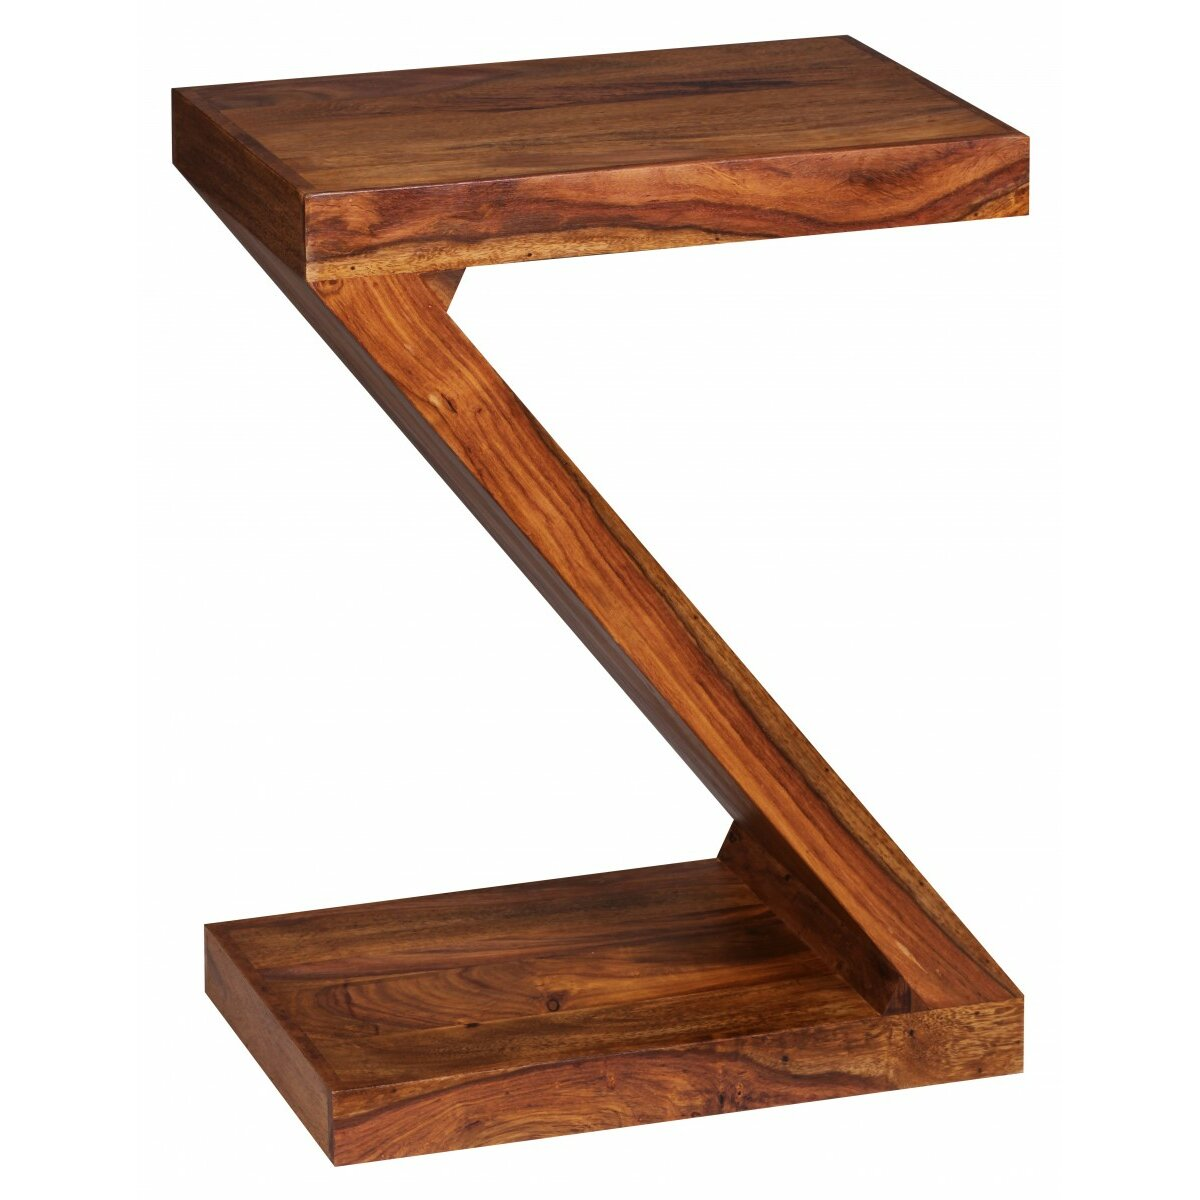 Bel Étage Z Side Table & Reviews